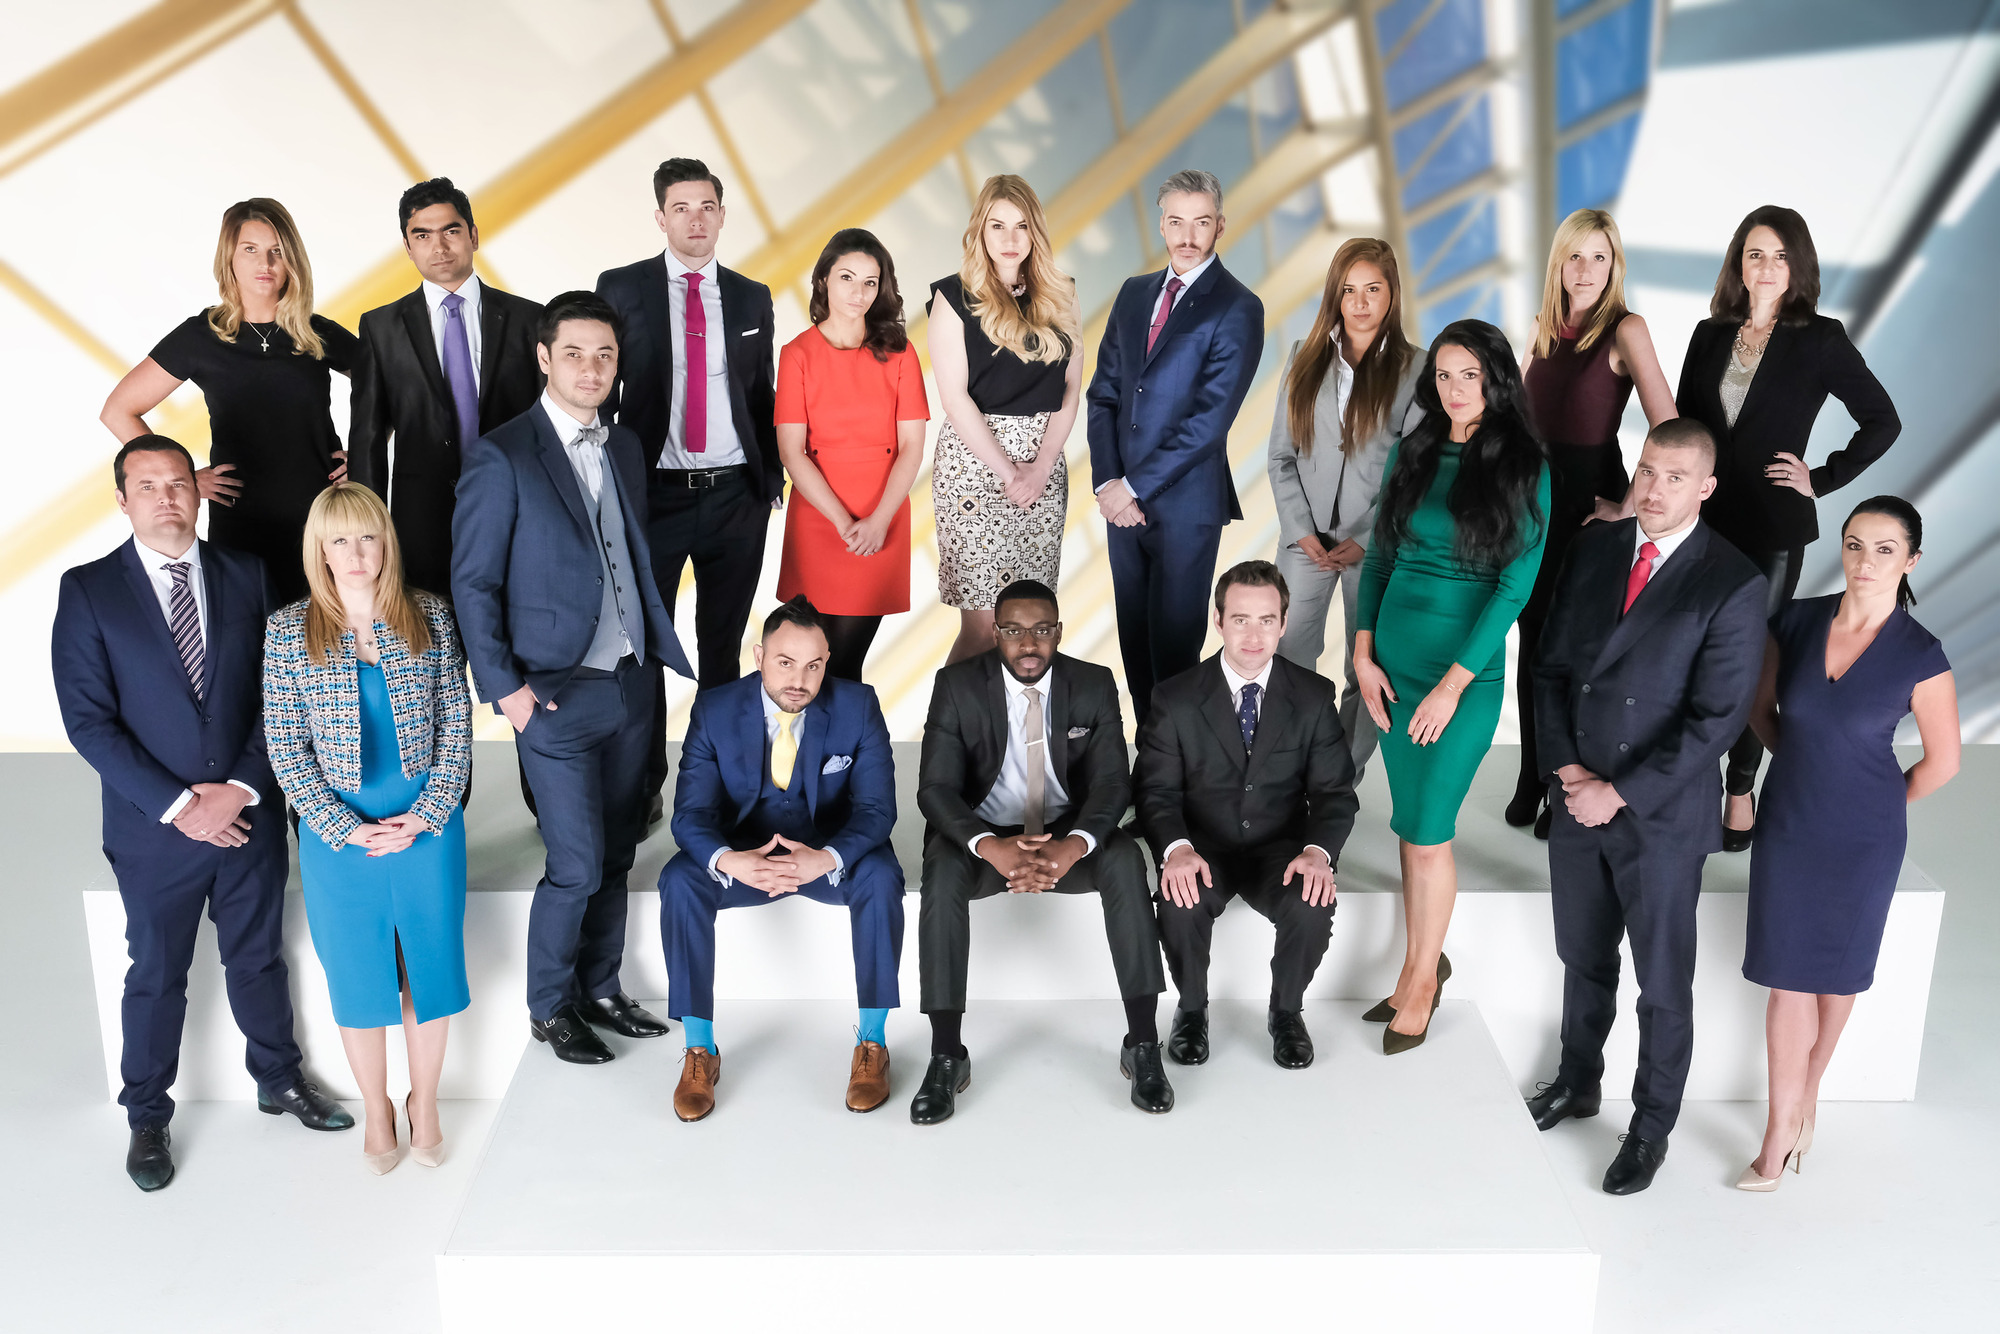 Two Apprentice contestants leave in shock circumstances